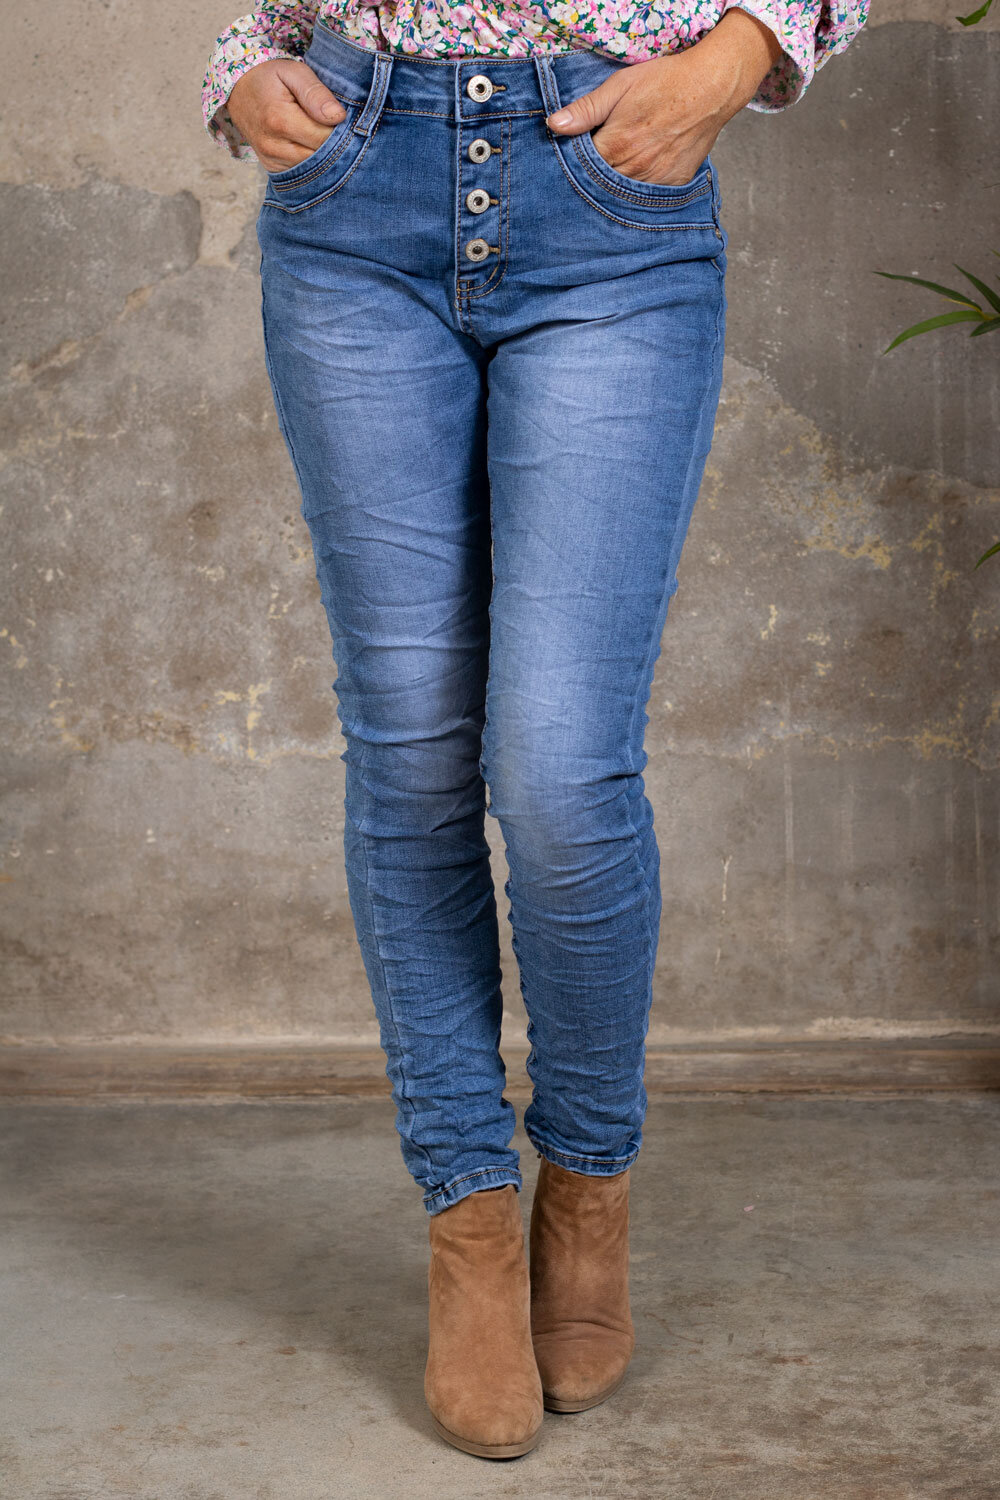 Jeans JW2602 - Light wash